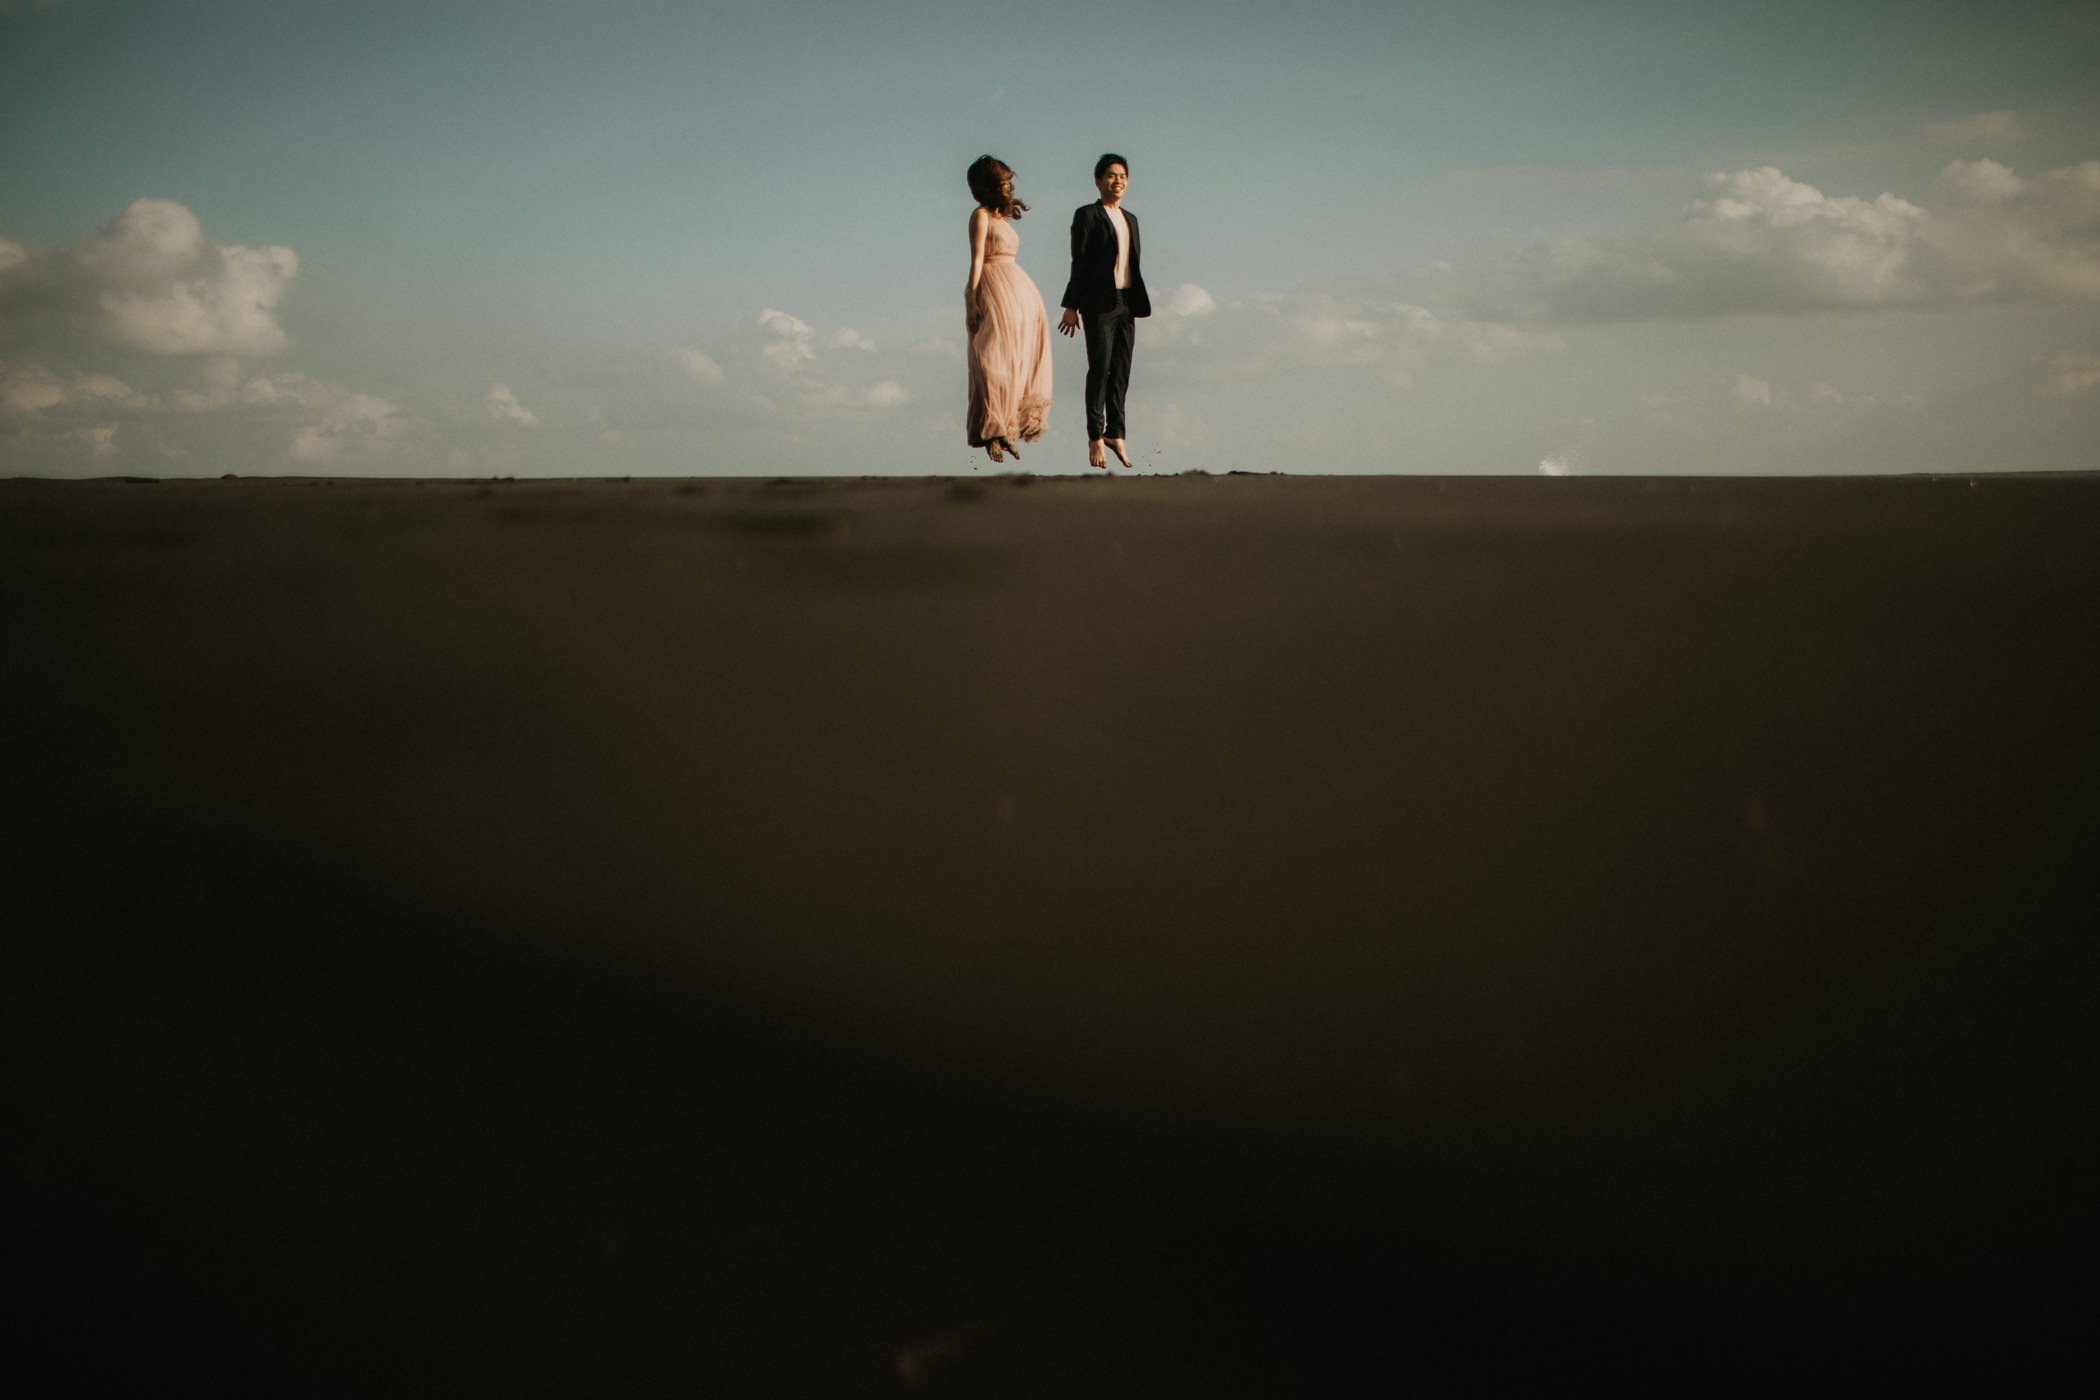 iluminen bali wedding photographer destination photography visual storyteller mobile